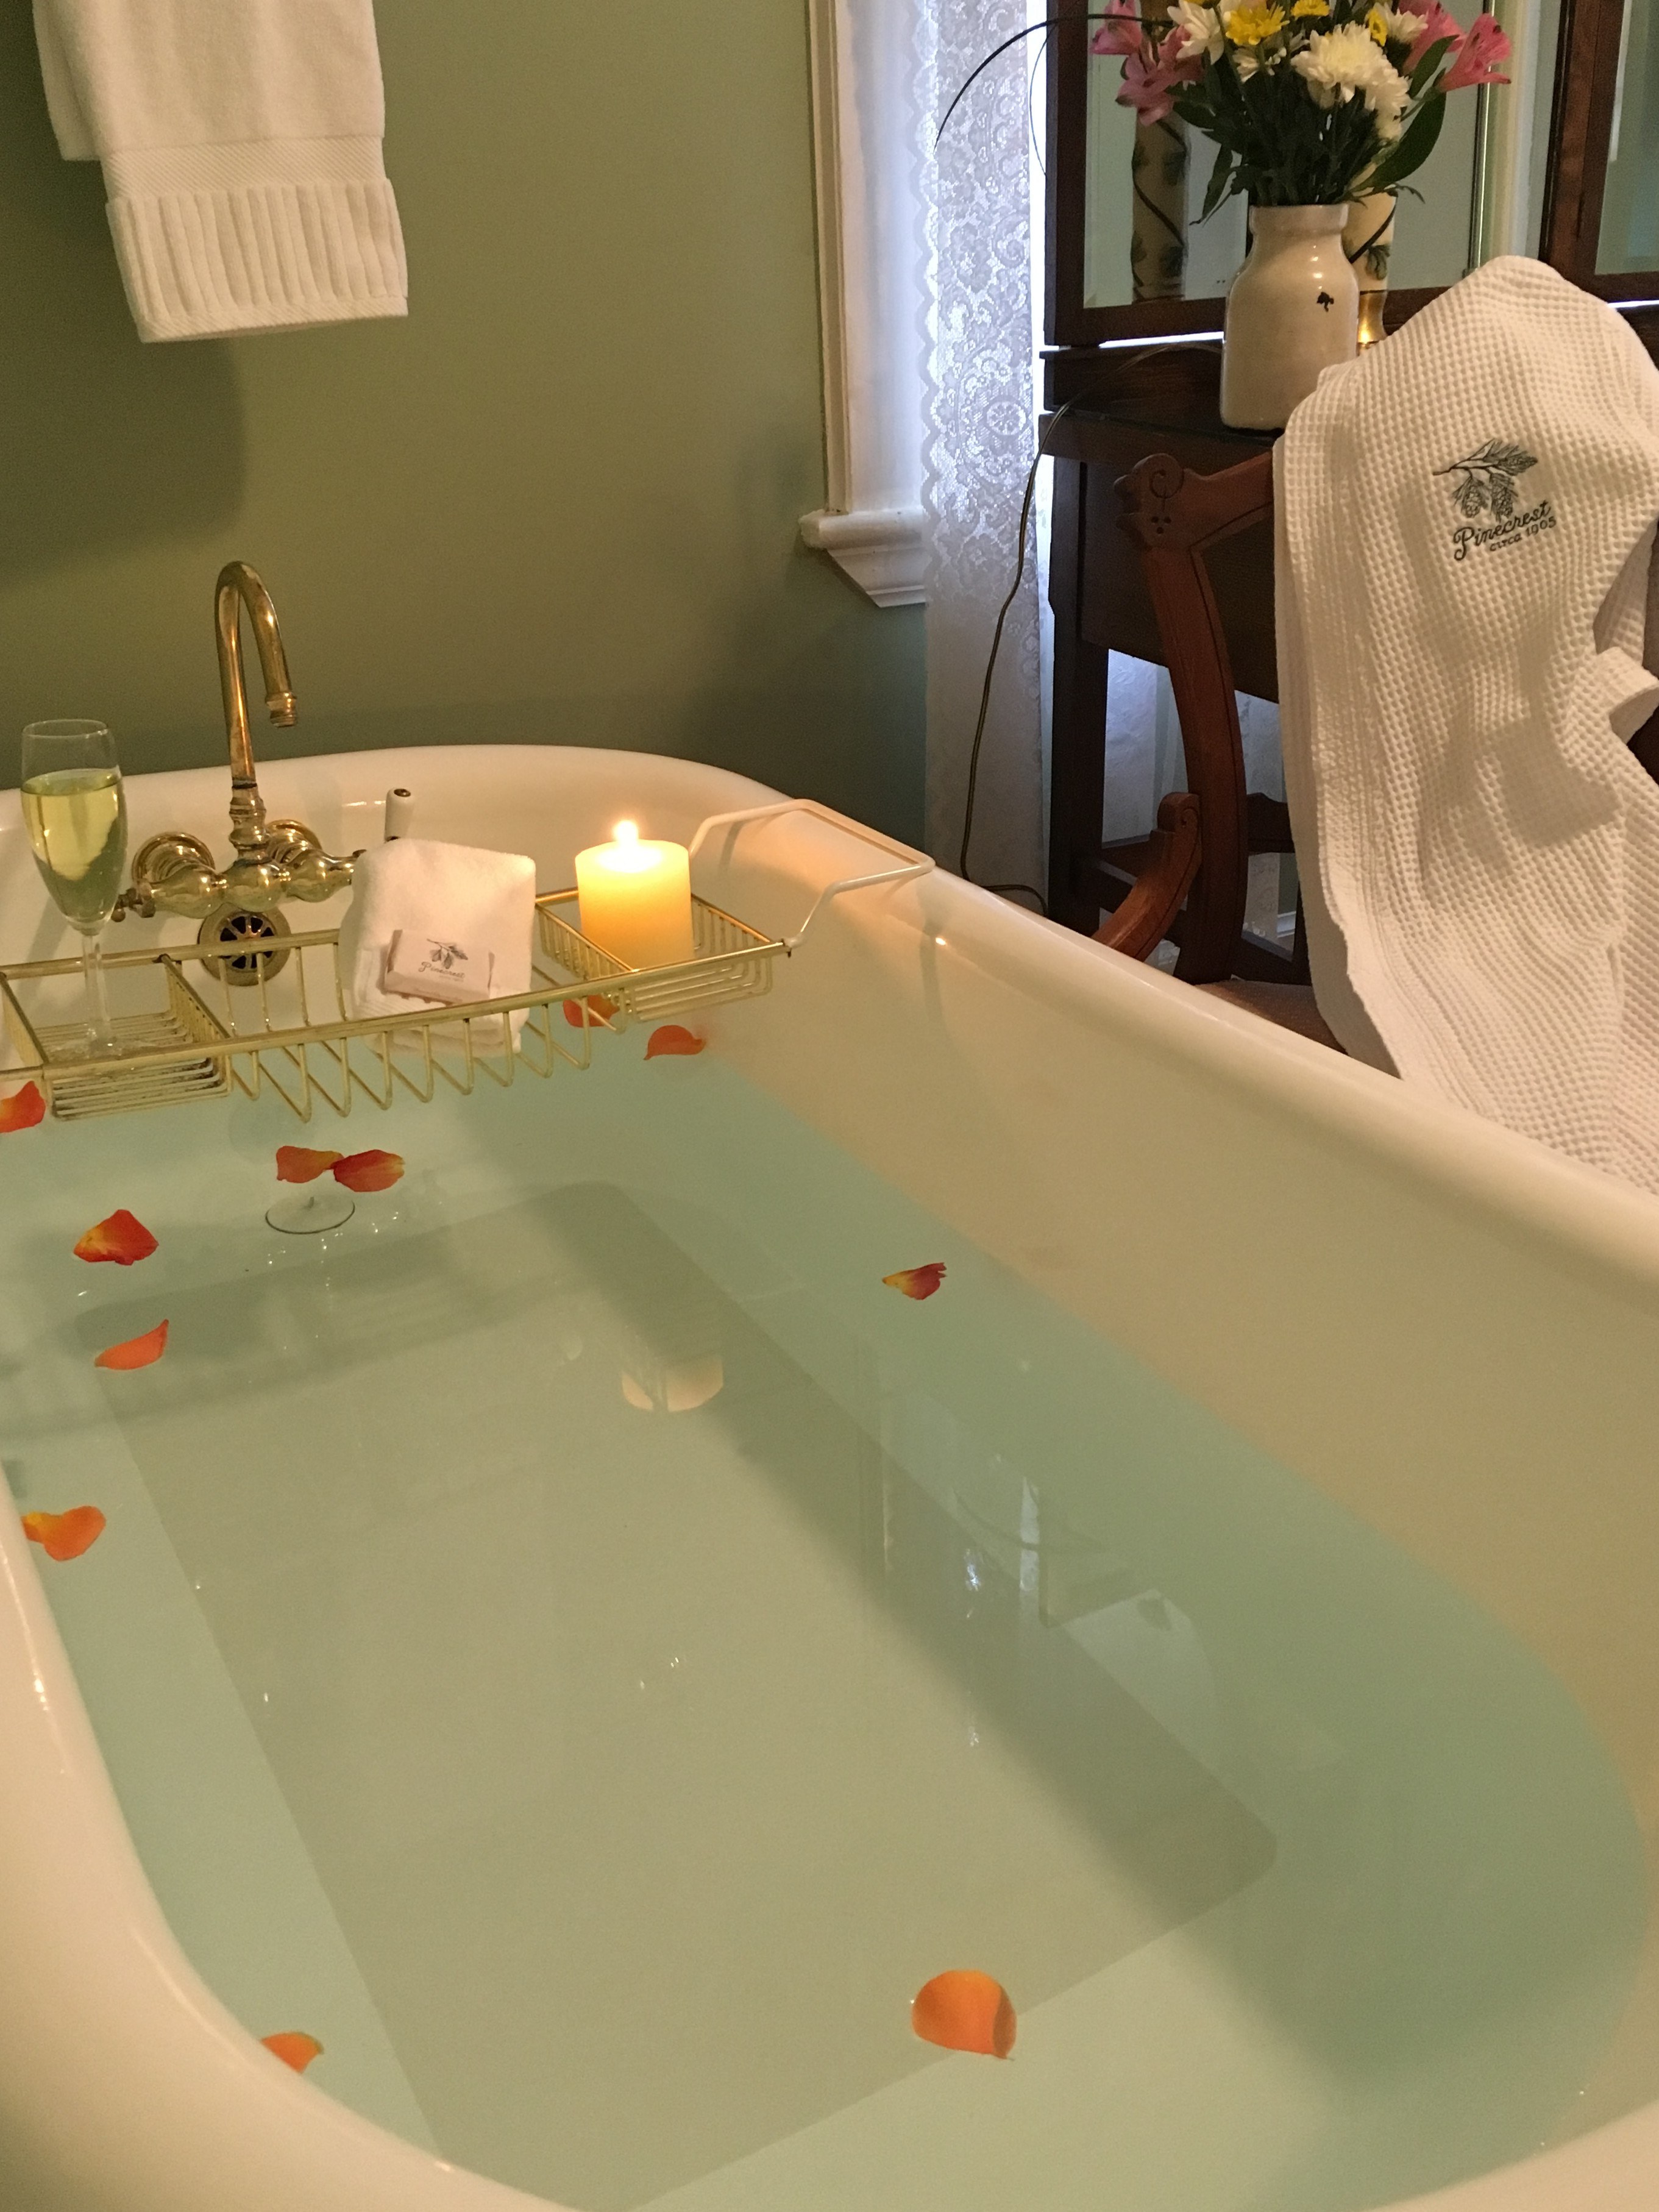 romantic clawfoot bathtub at b&b with rose petals